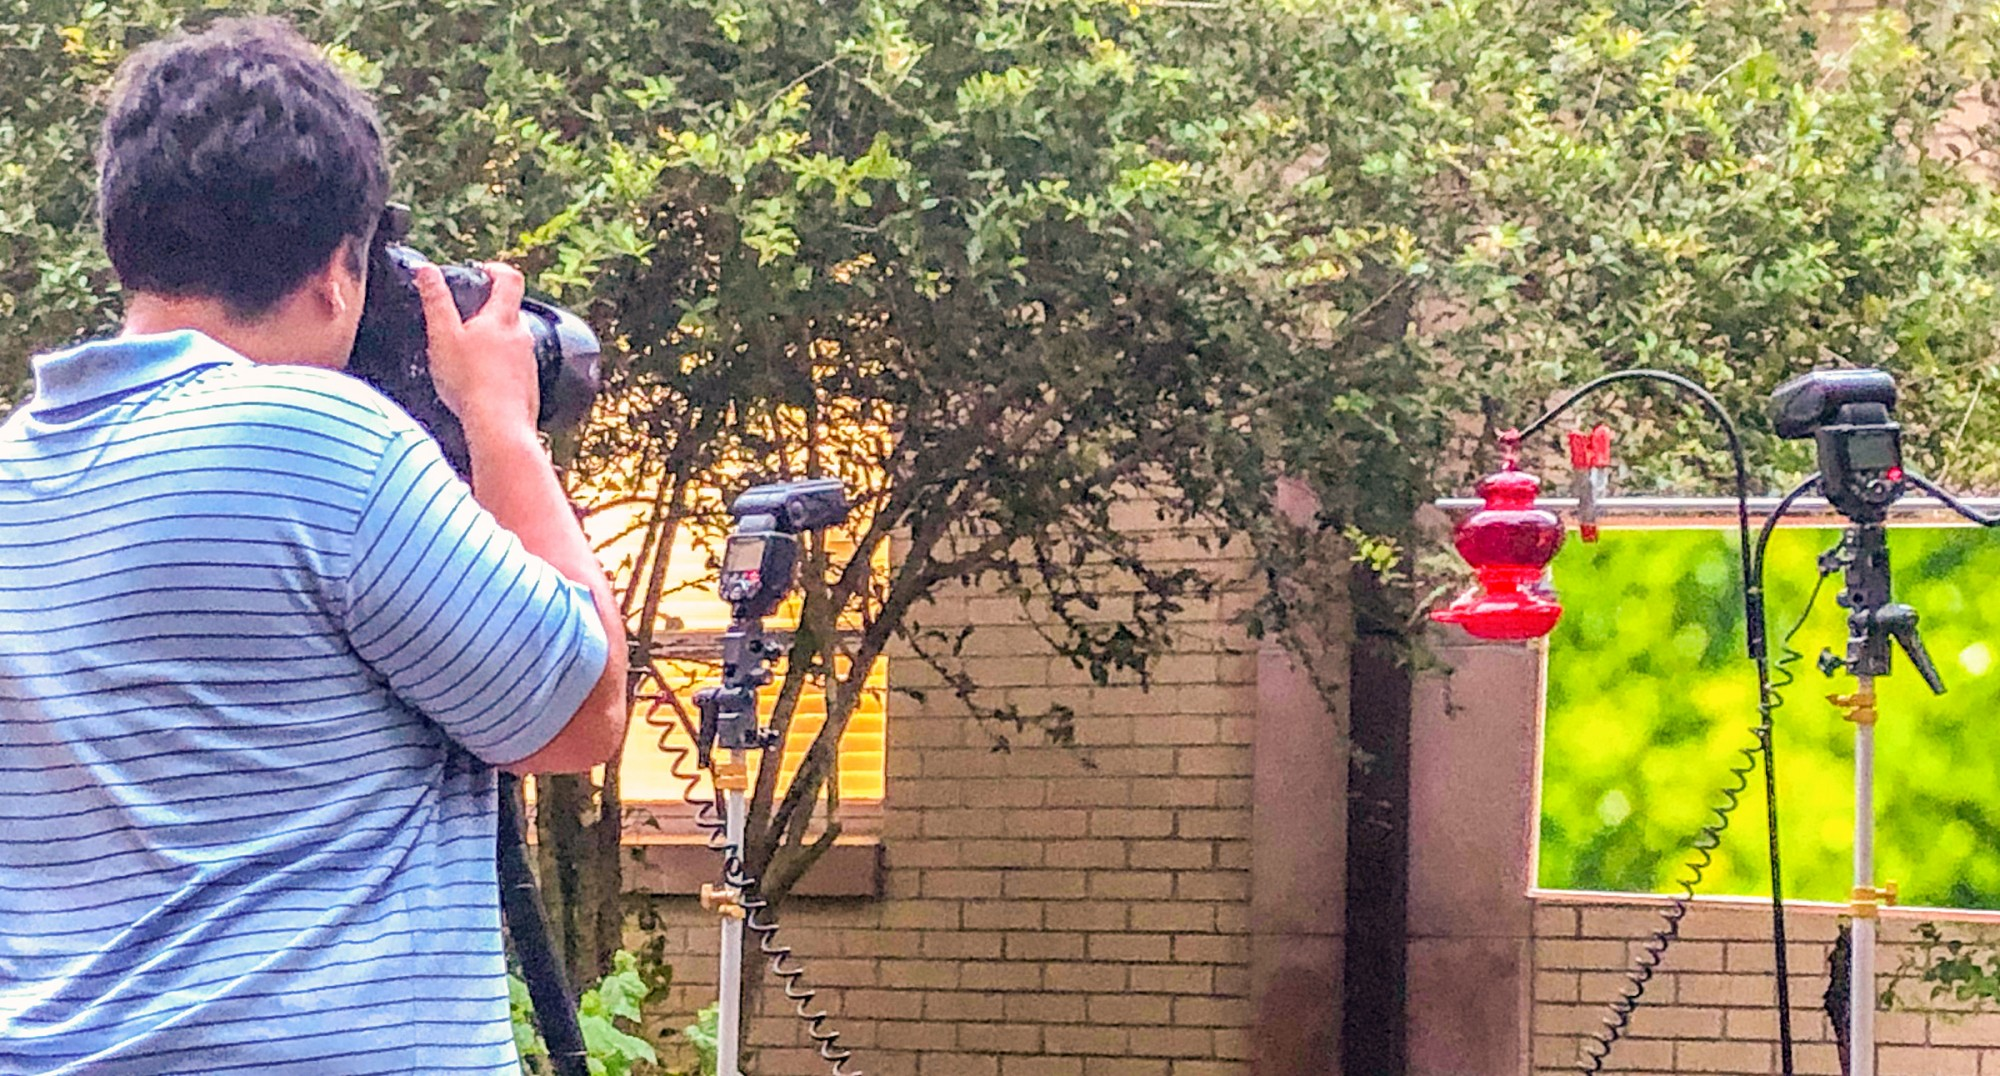 Alex Meza photographing hummingbirds in Wildlife Photography class